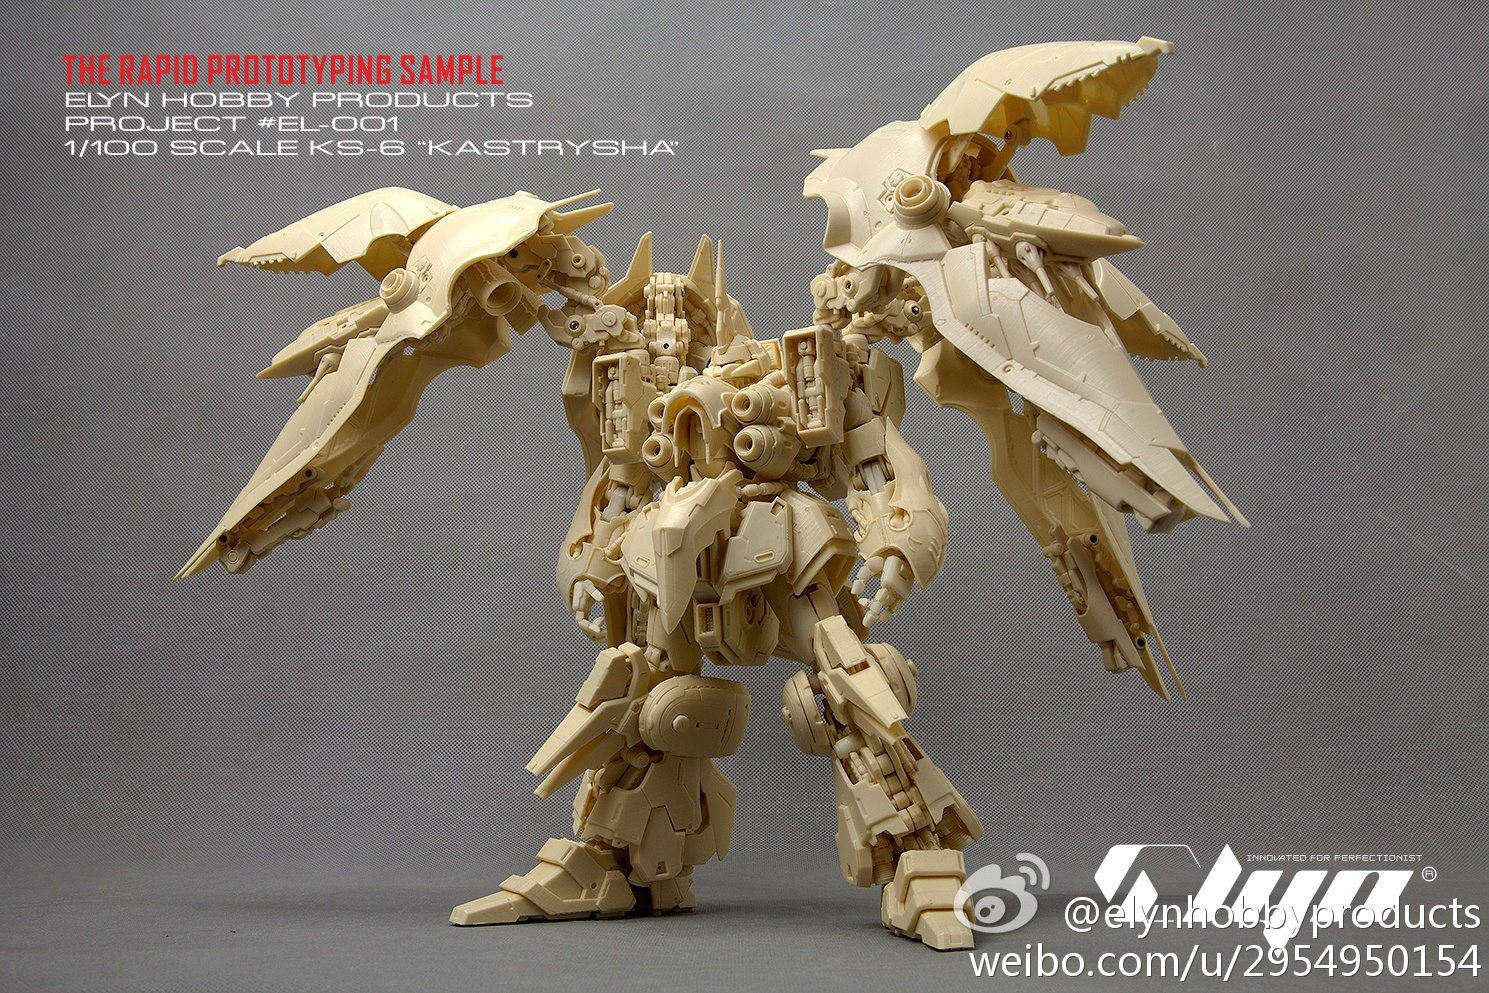 1/100 KS-6 Kastrysha [kshatriya] by Elyn Hobby: Preview No 13 Big or